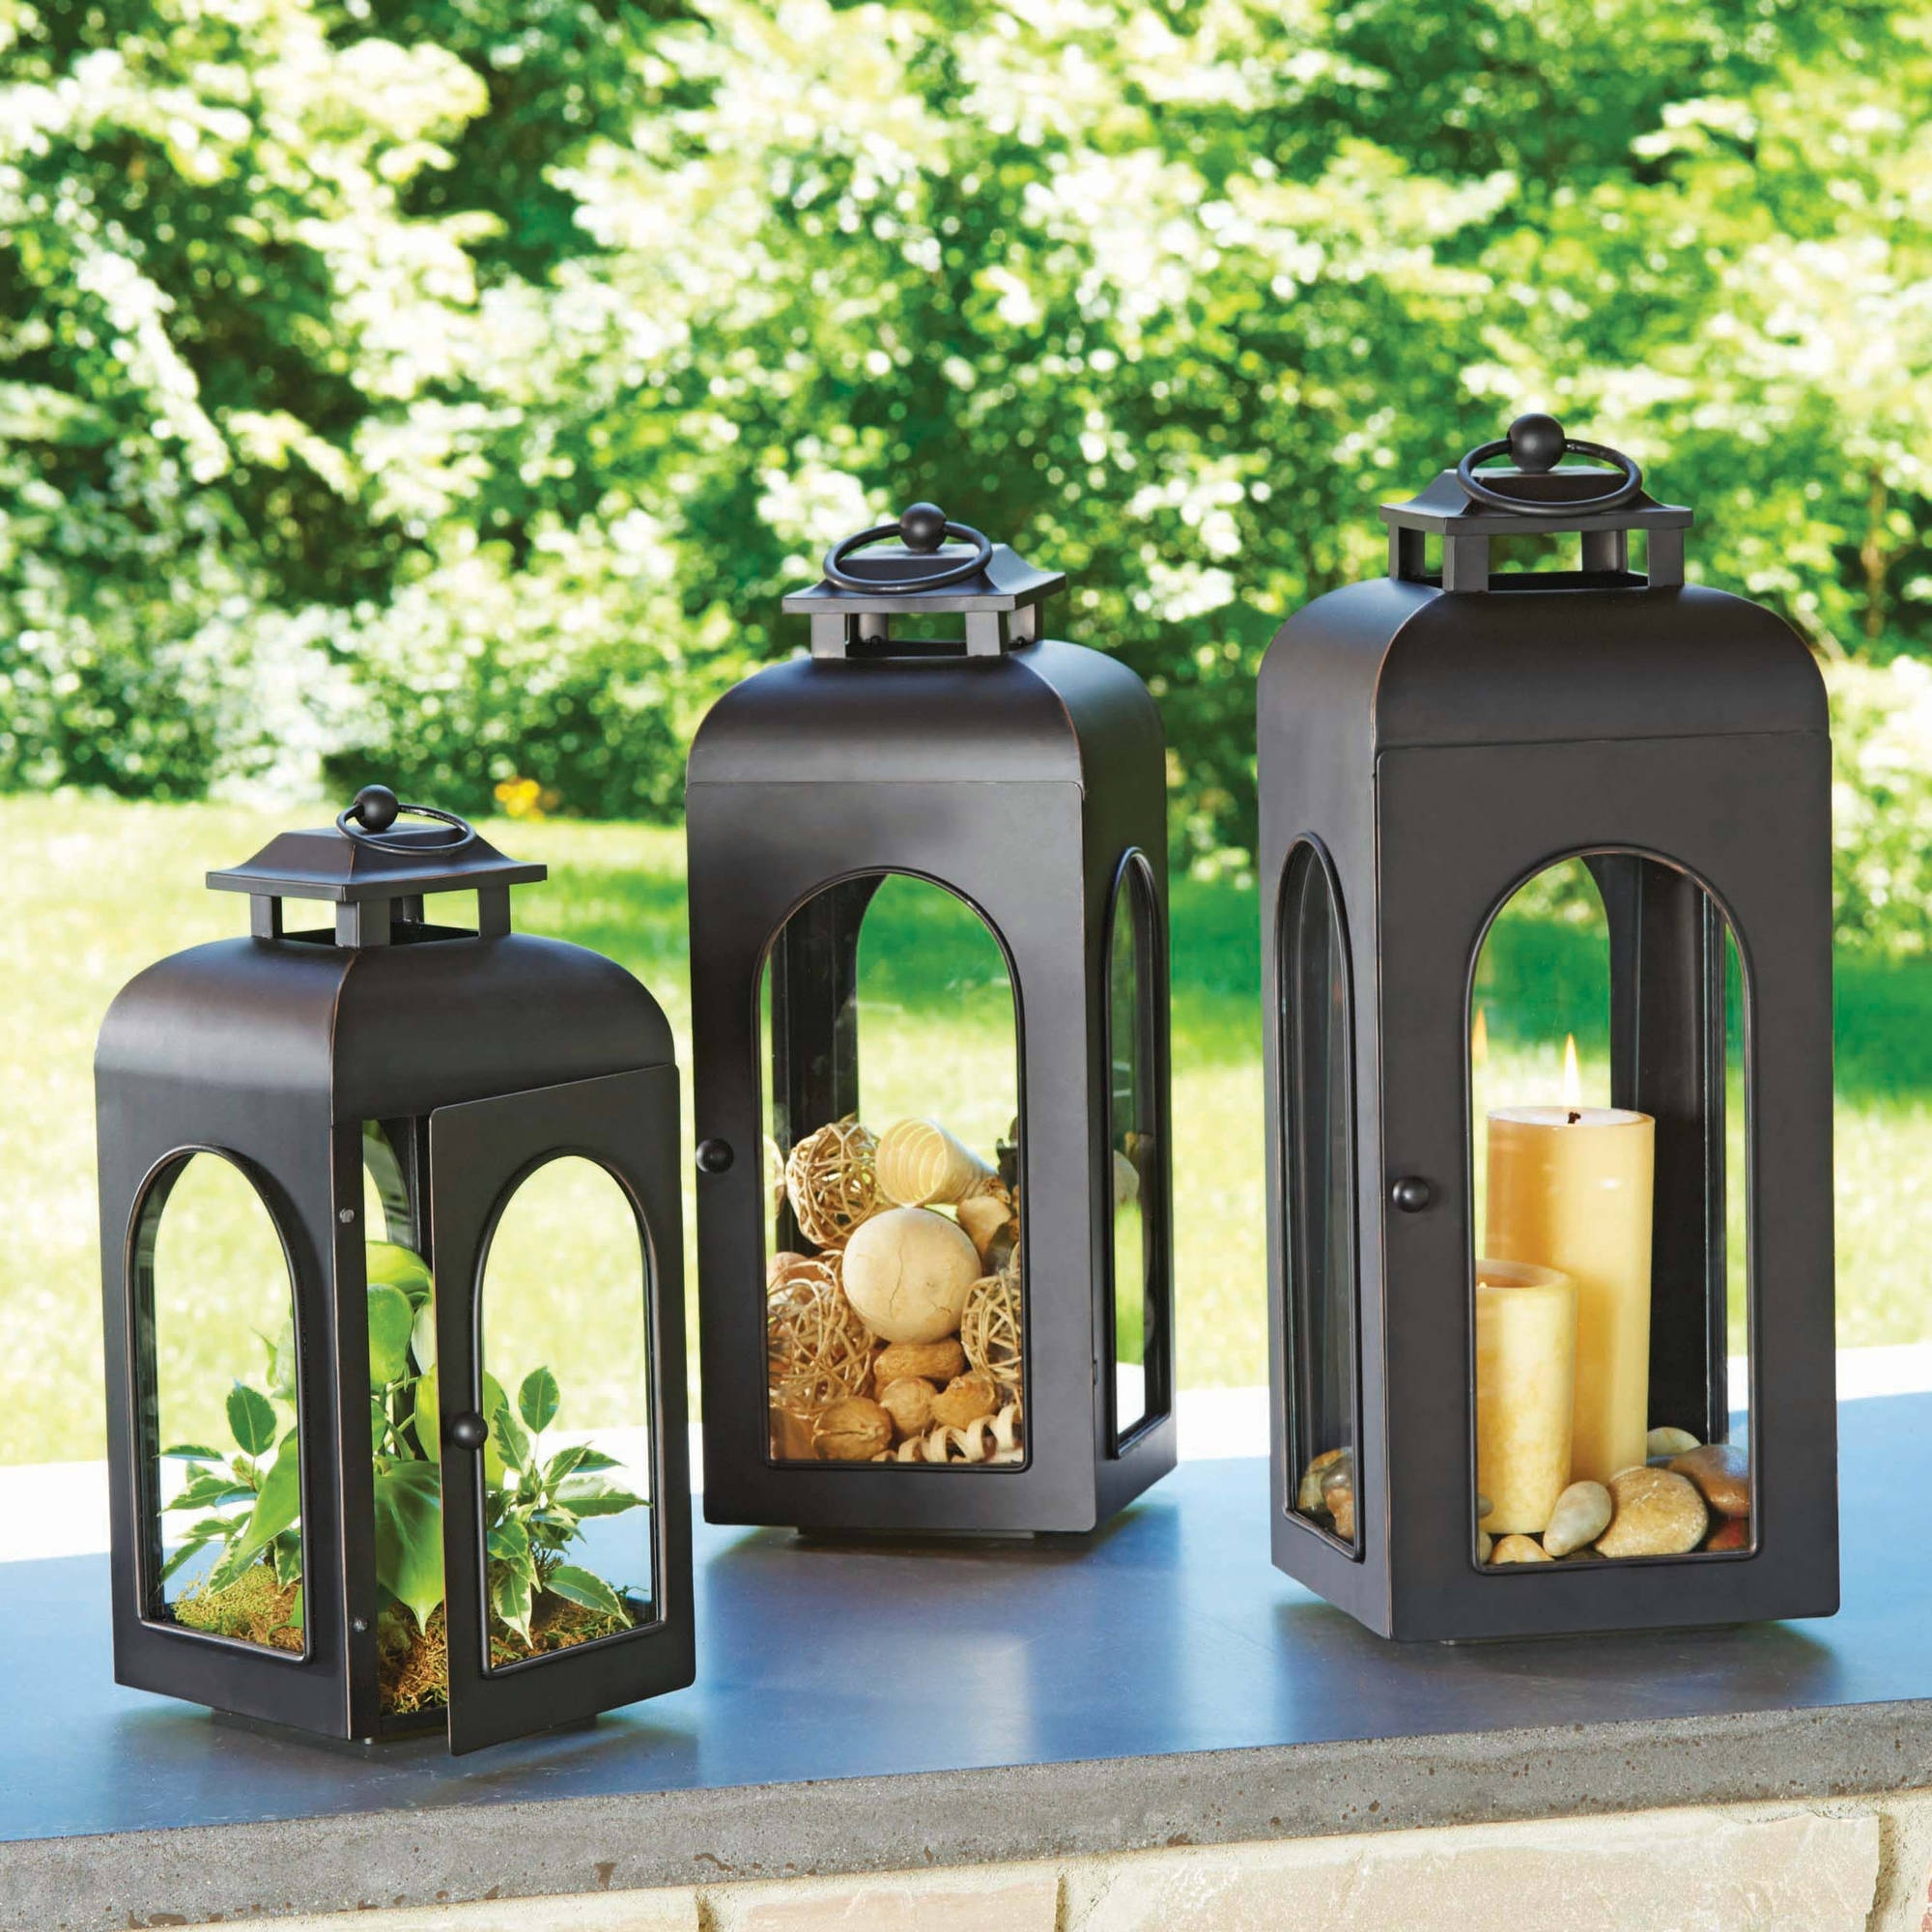 Widely Used Better Homes And Gardens Domed Metal Outdoor Lantern – Walmart Intended For Walmart Outdoor Lanterns (View 20 of 20)